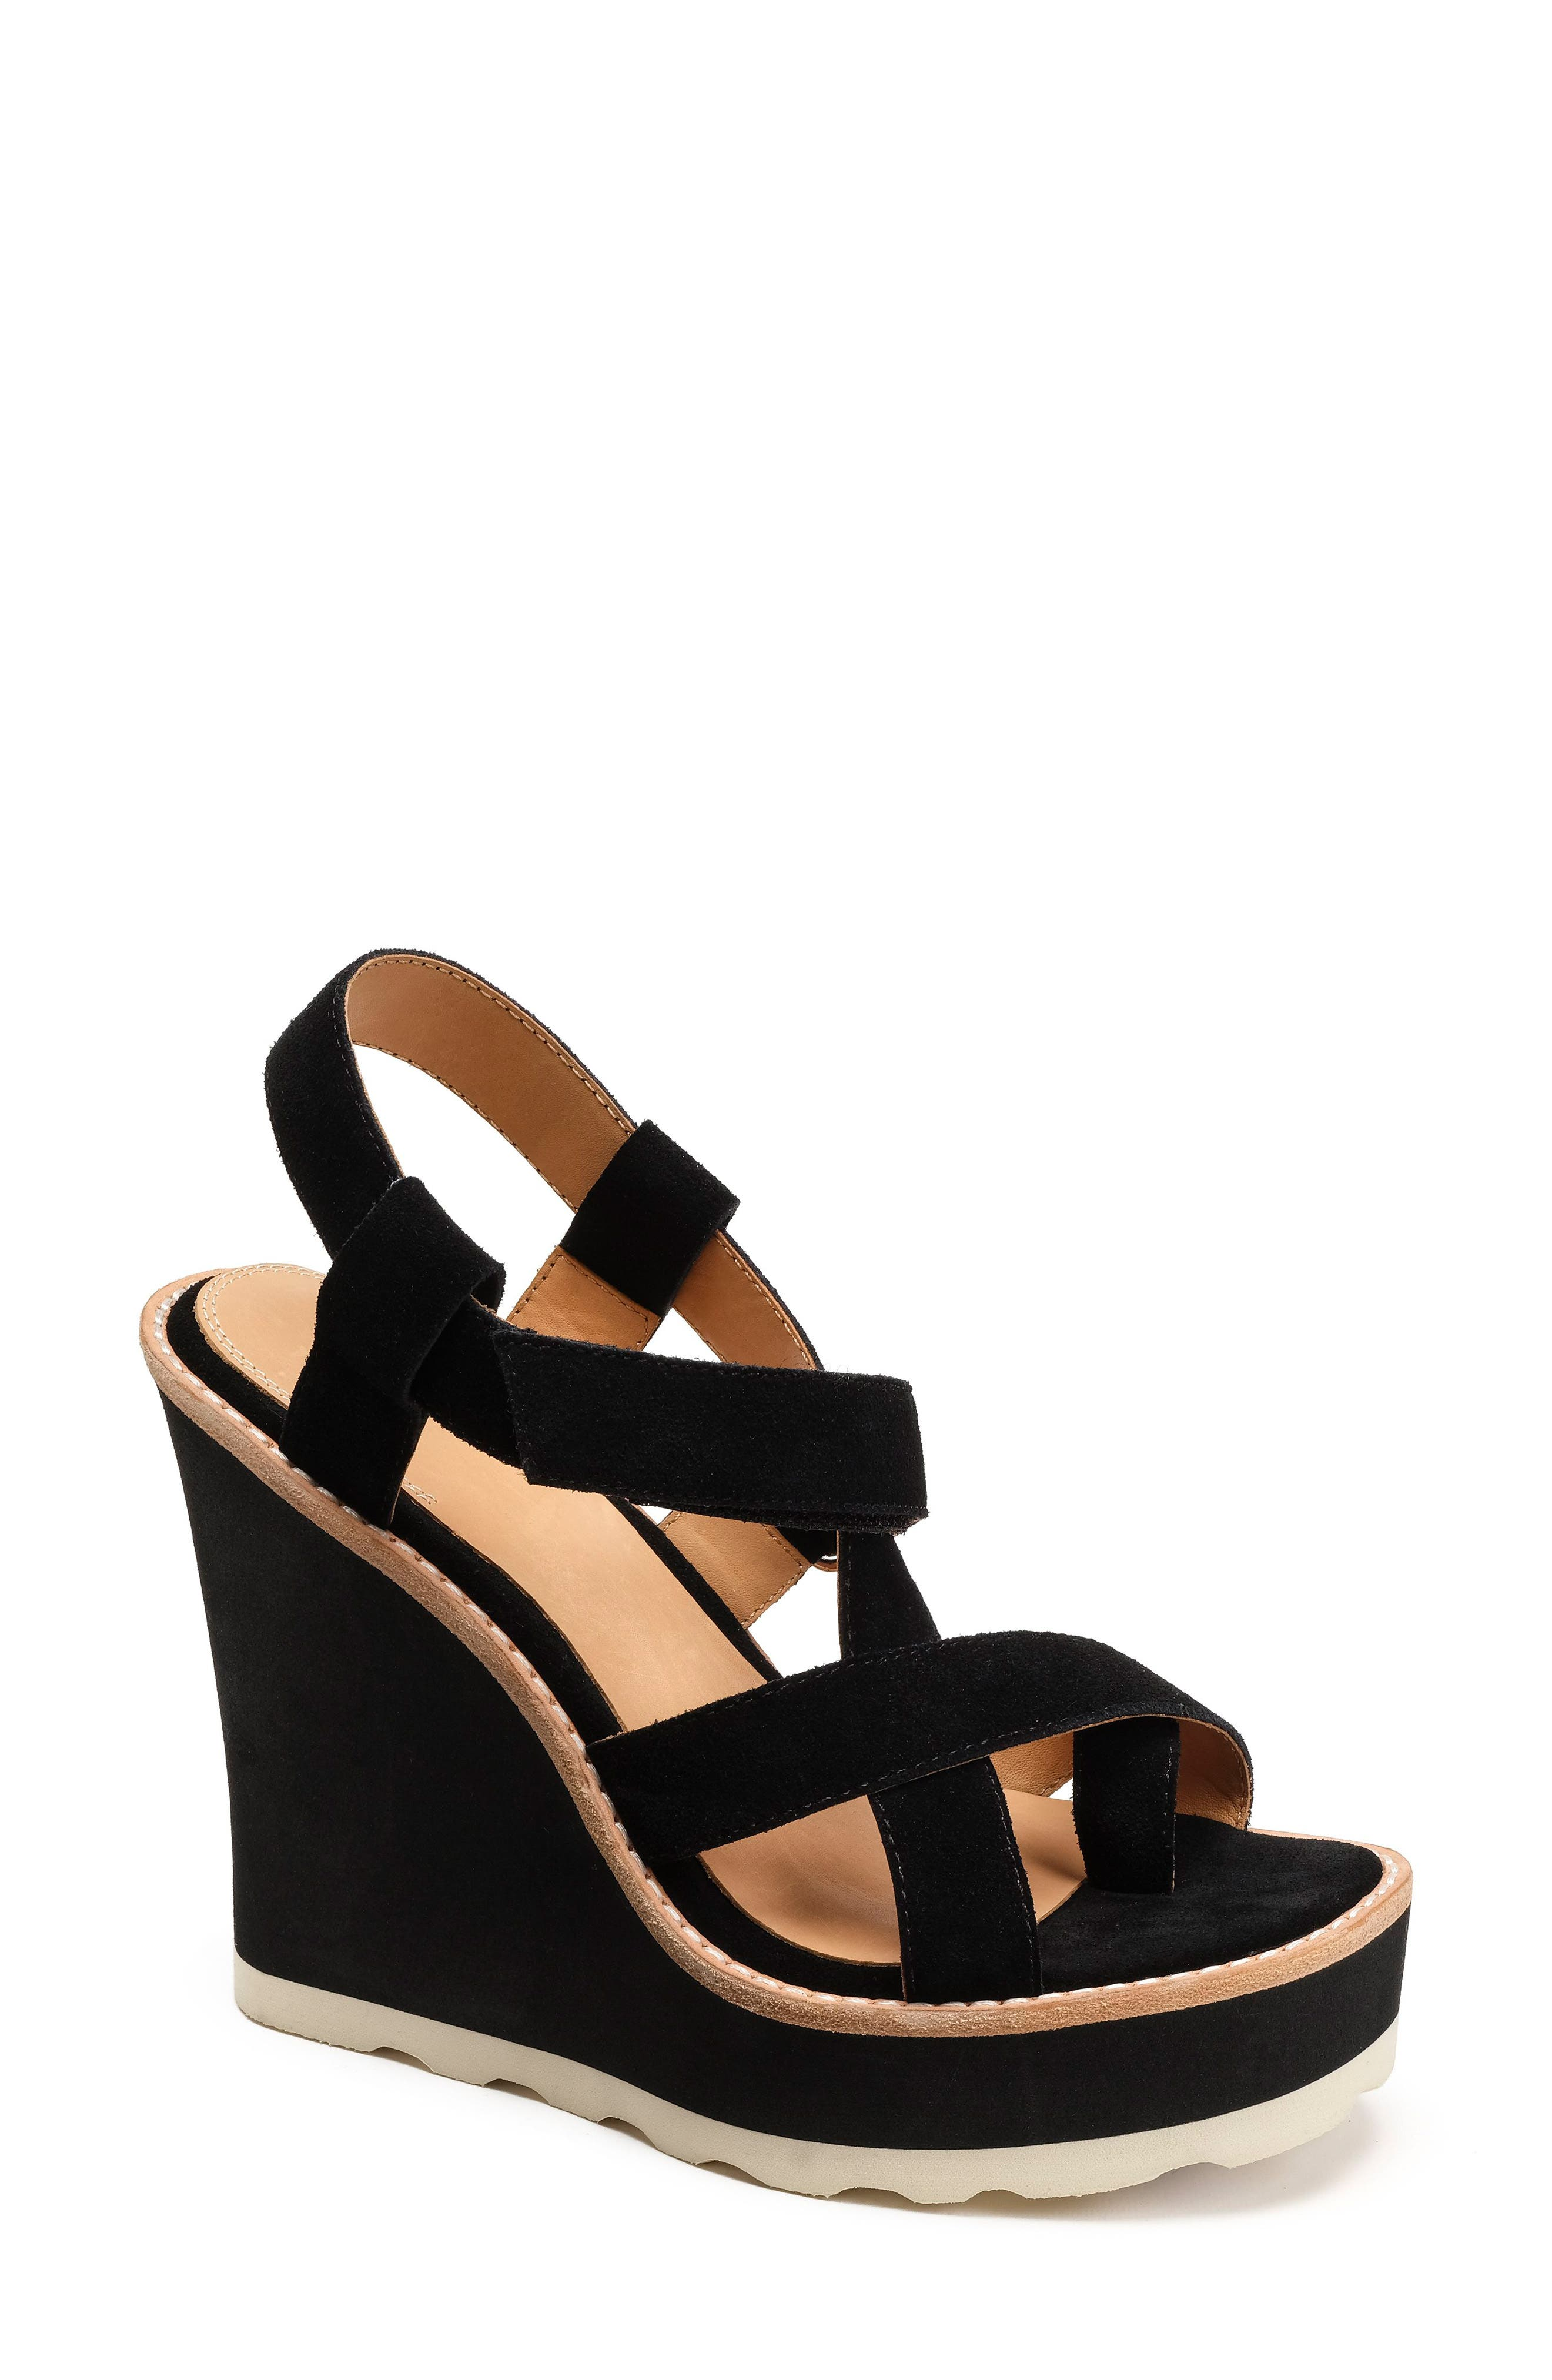 Rae Strappy Wedge Sandal,                         Main,                         color, 001